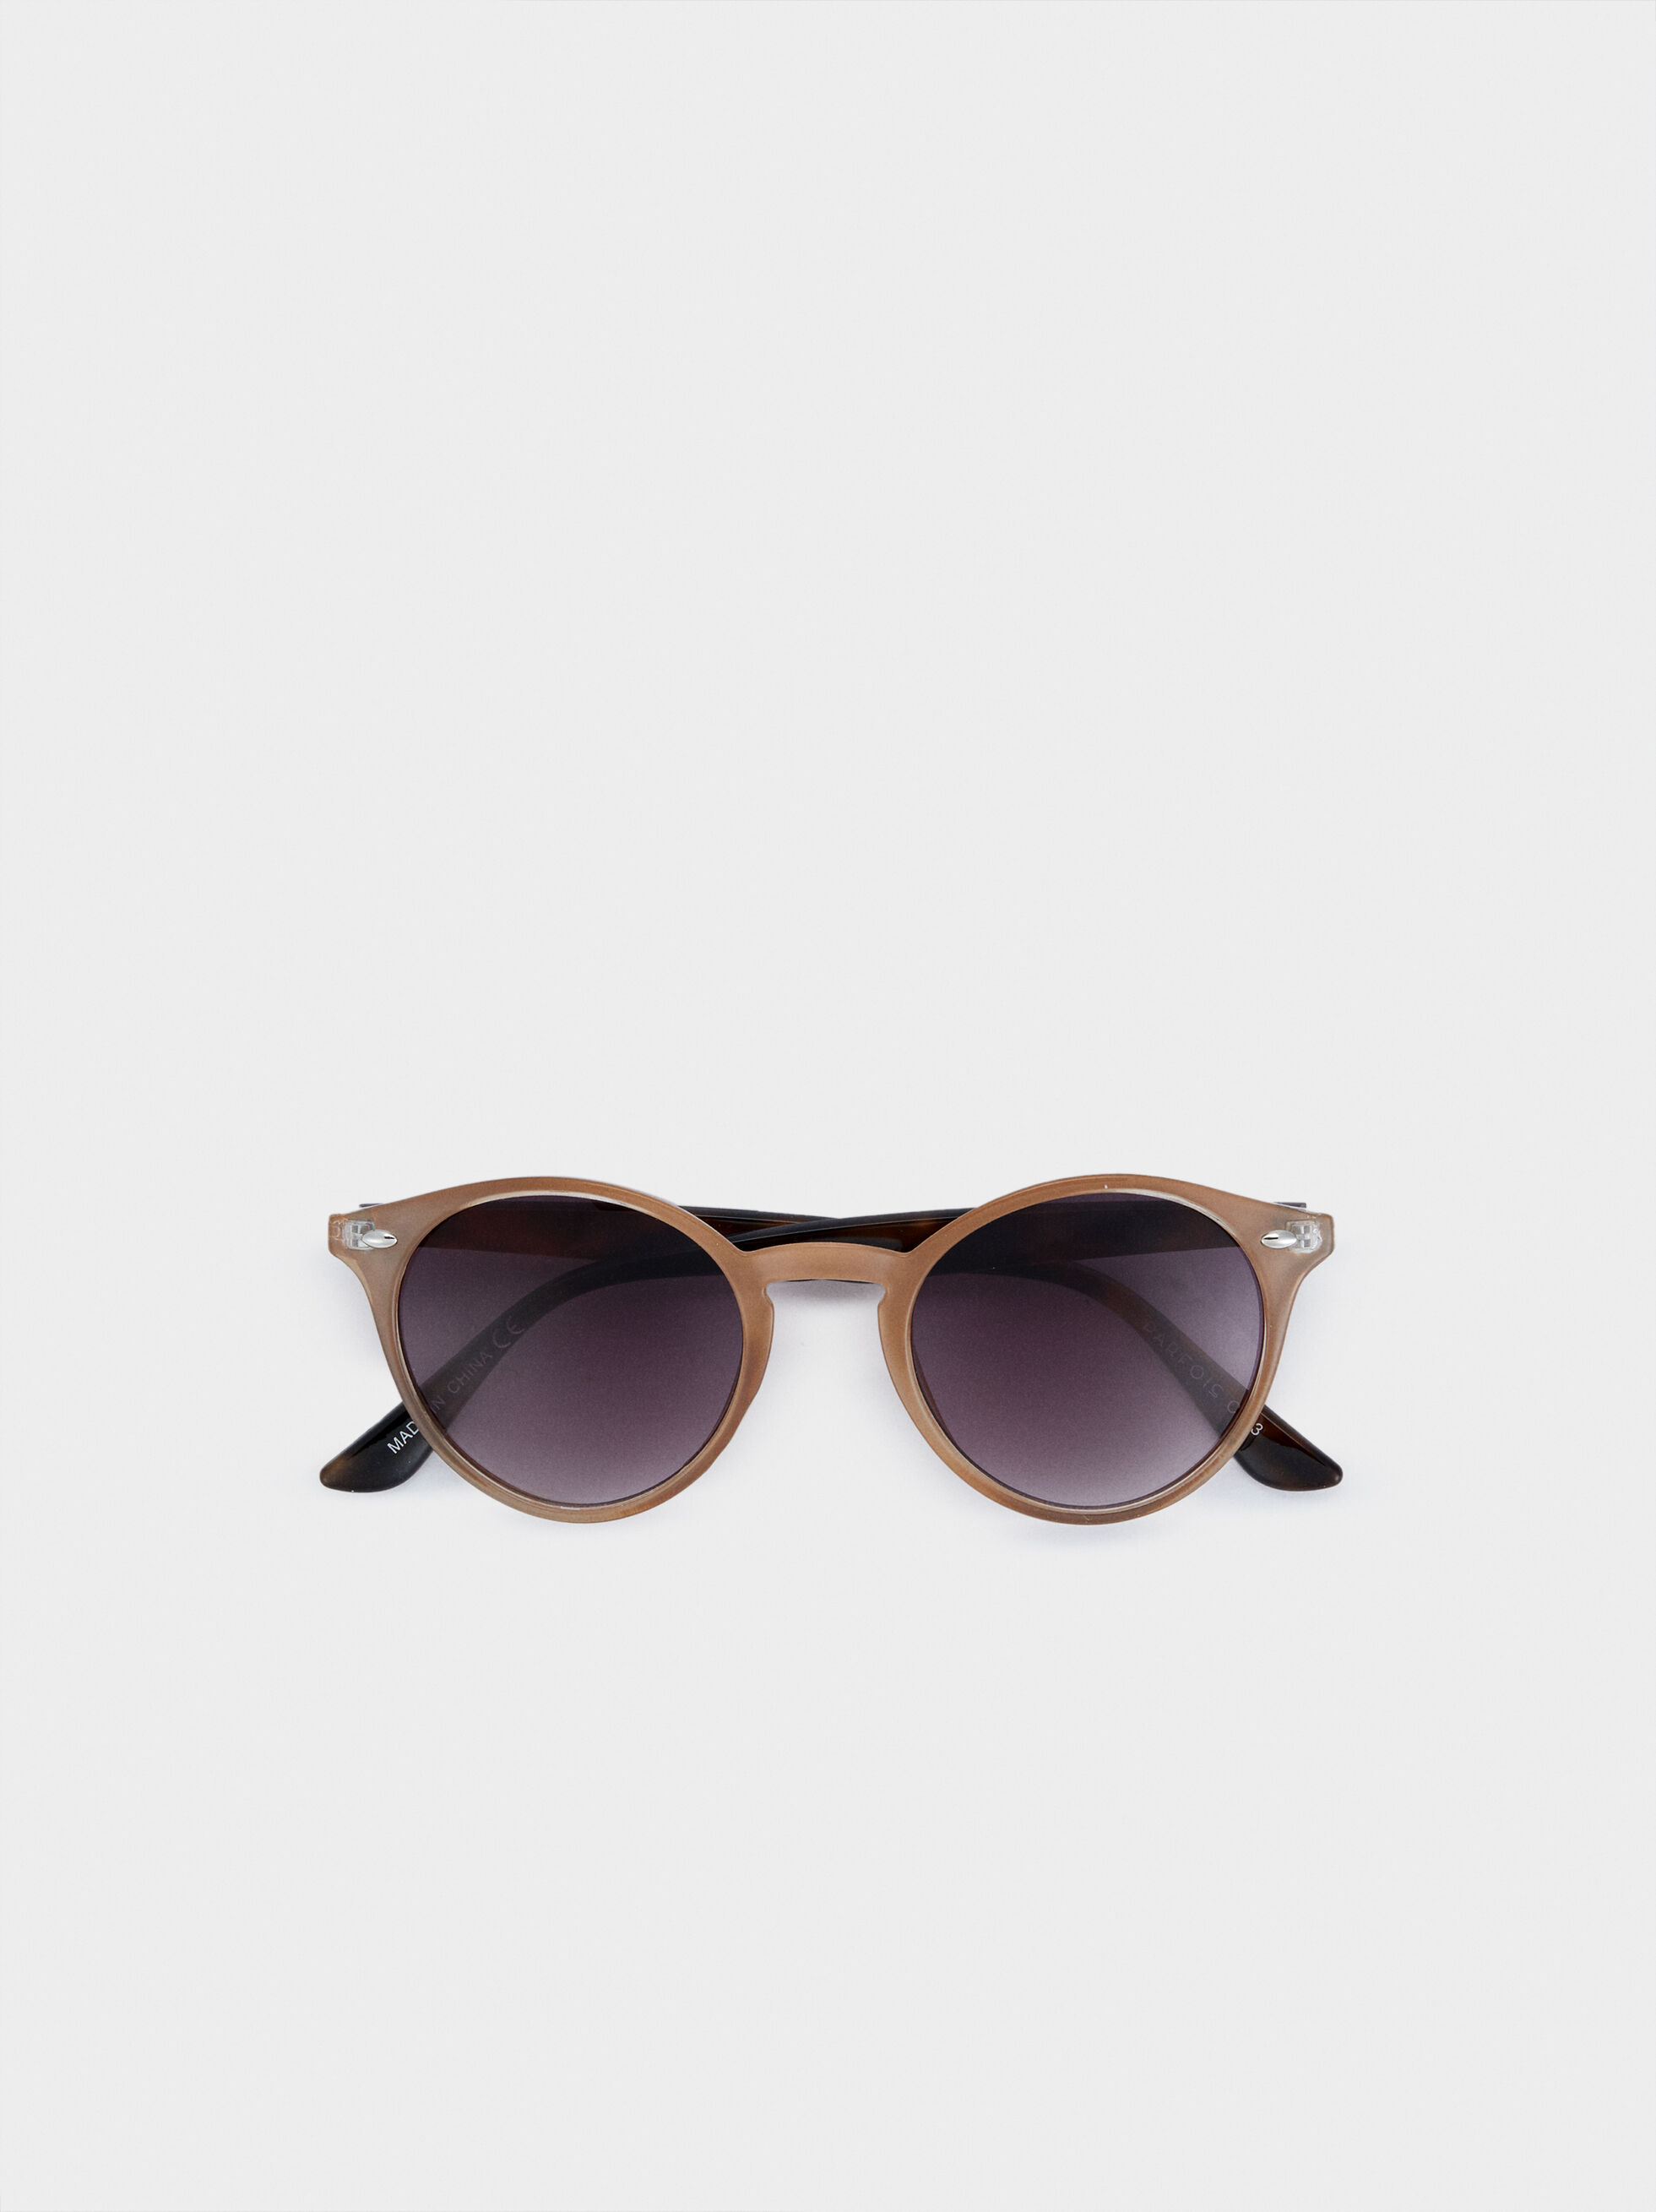 Round Frame Plastic Sunglasses, Brown, hi-res